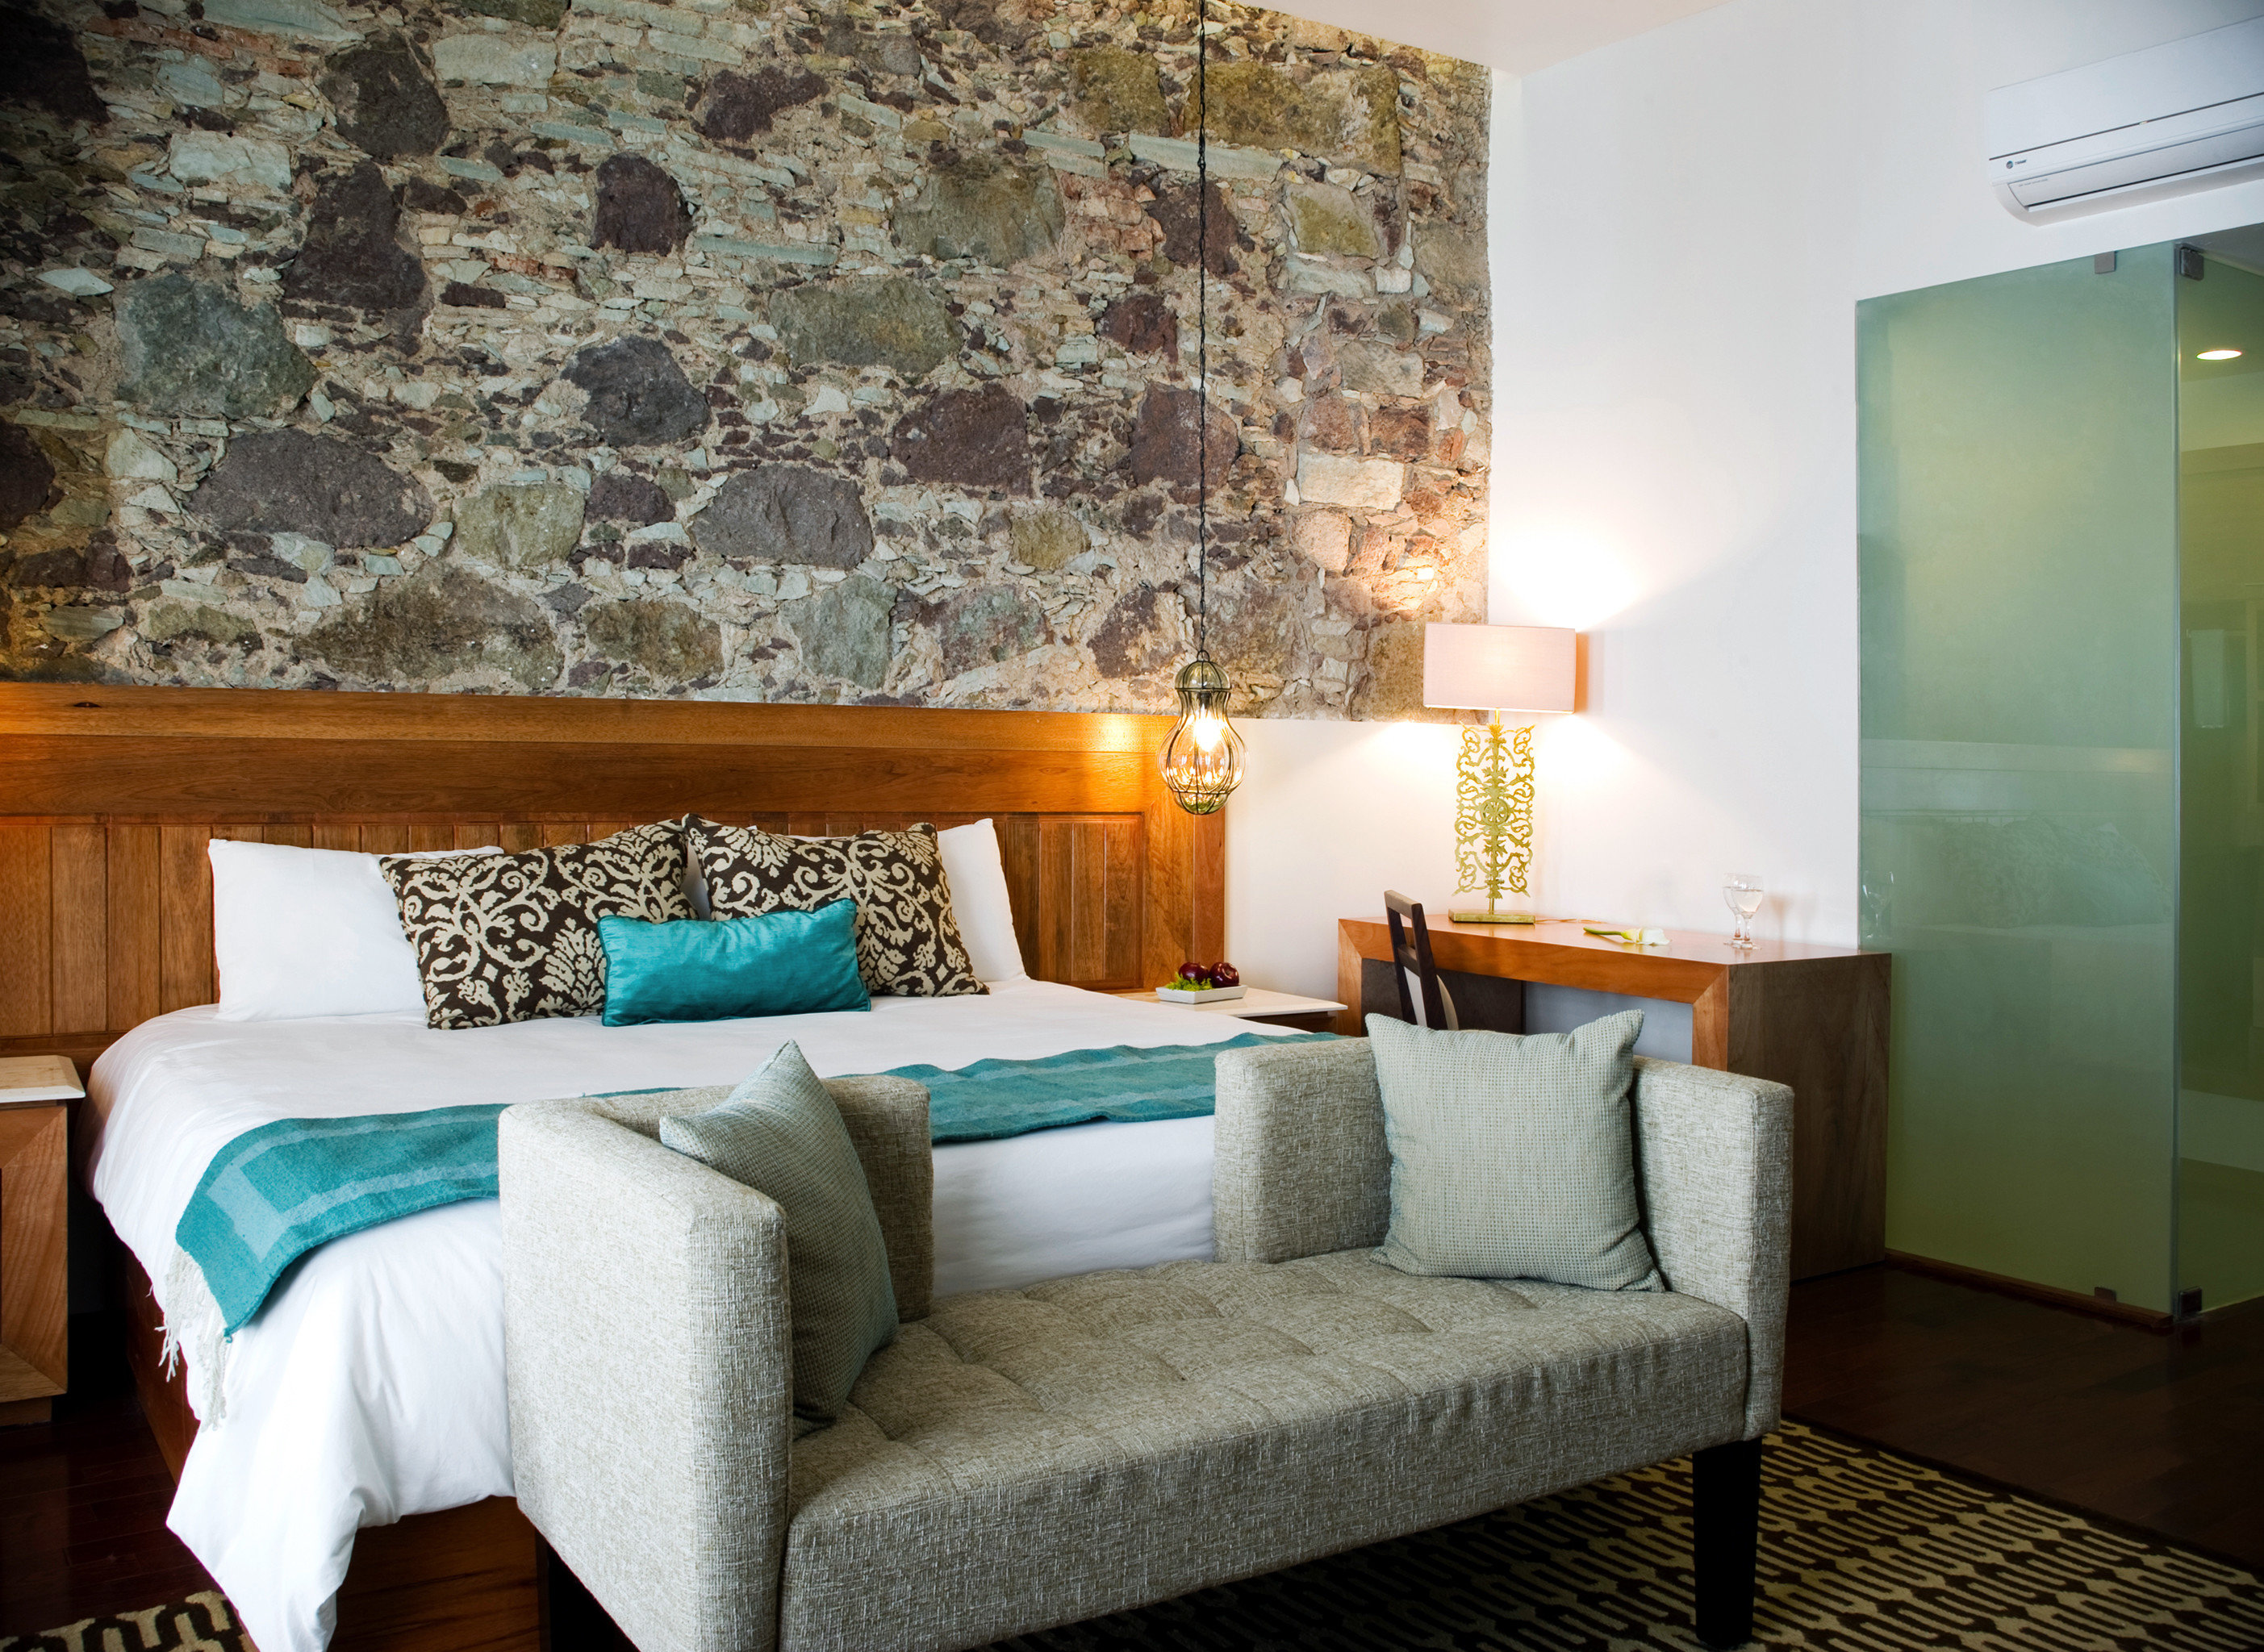 Bedroom Boutique Modern sofa green property living room cottage home Villa Suite colored stone tan